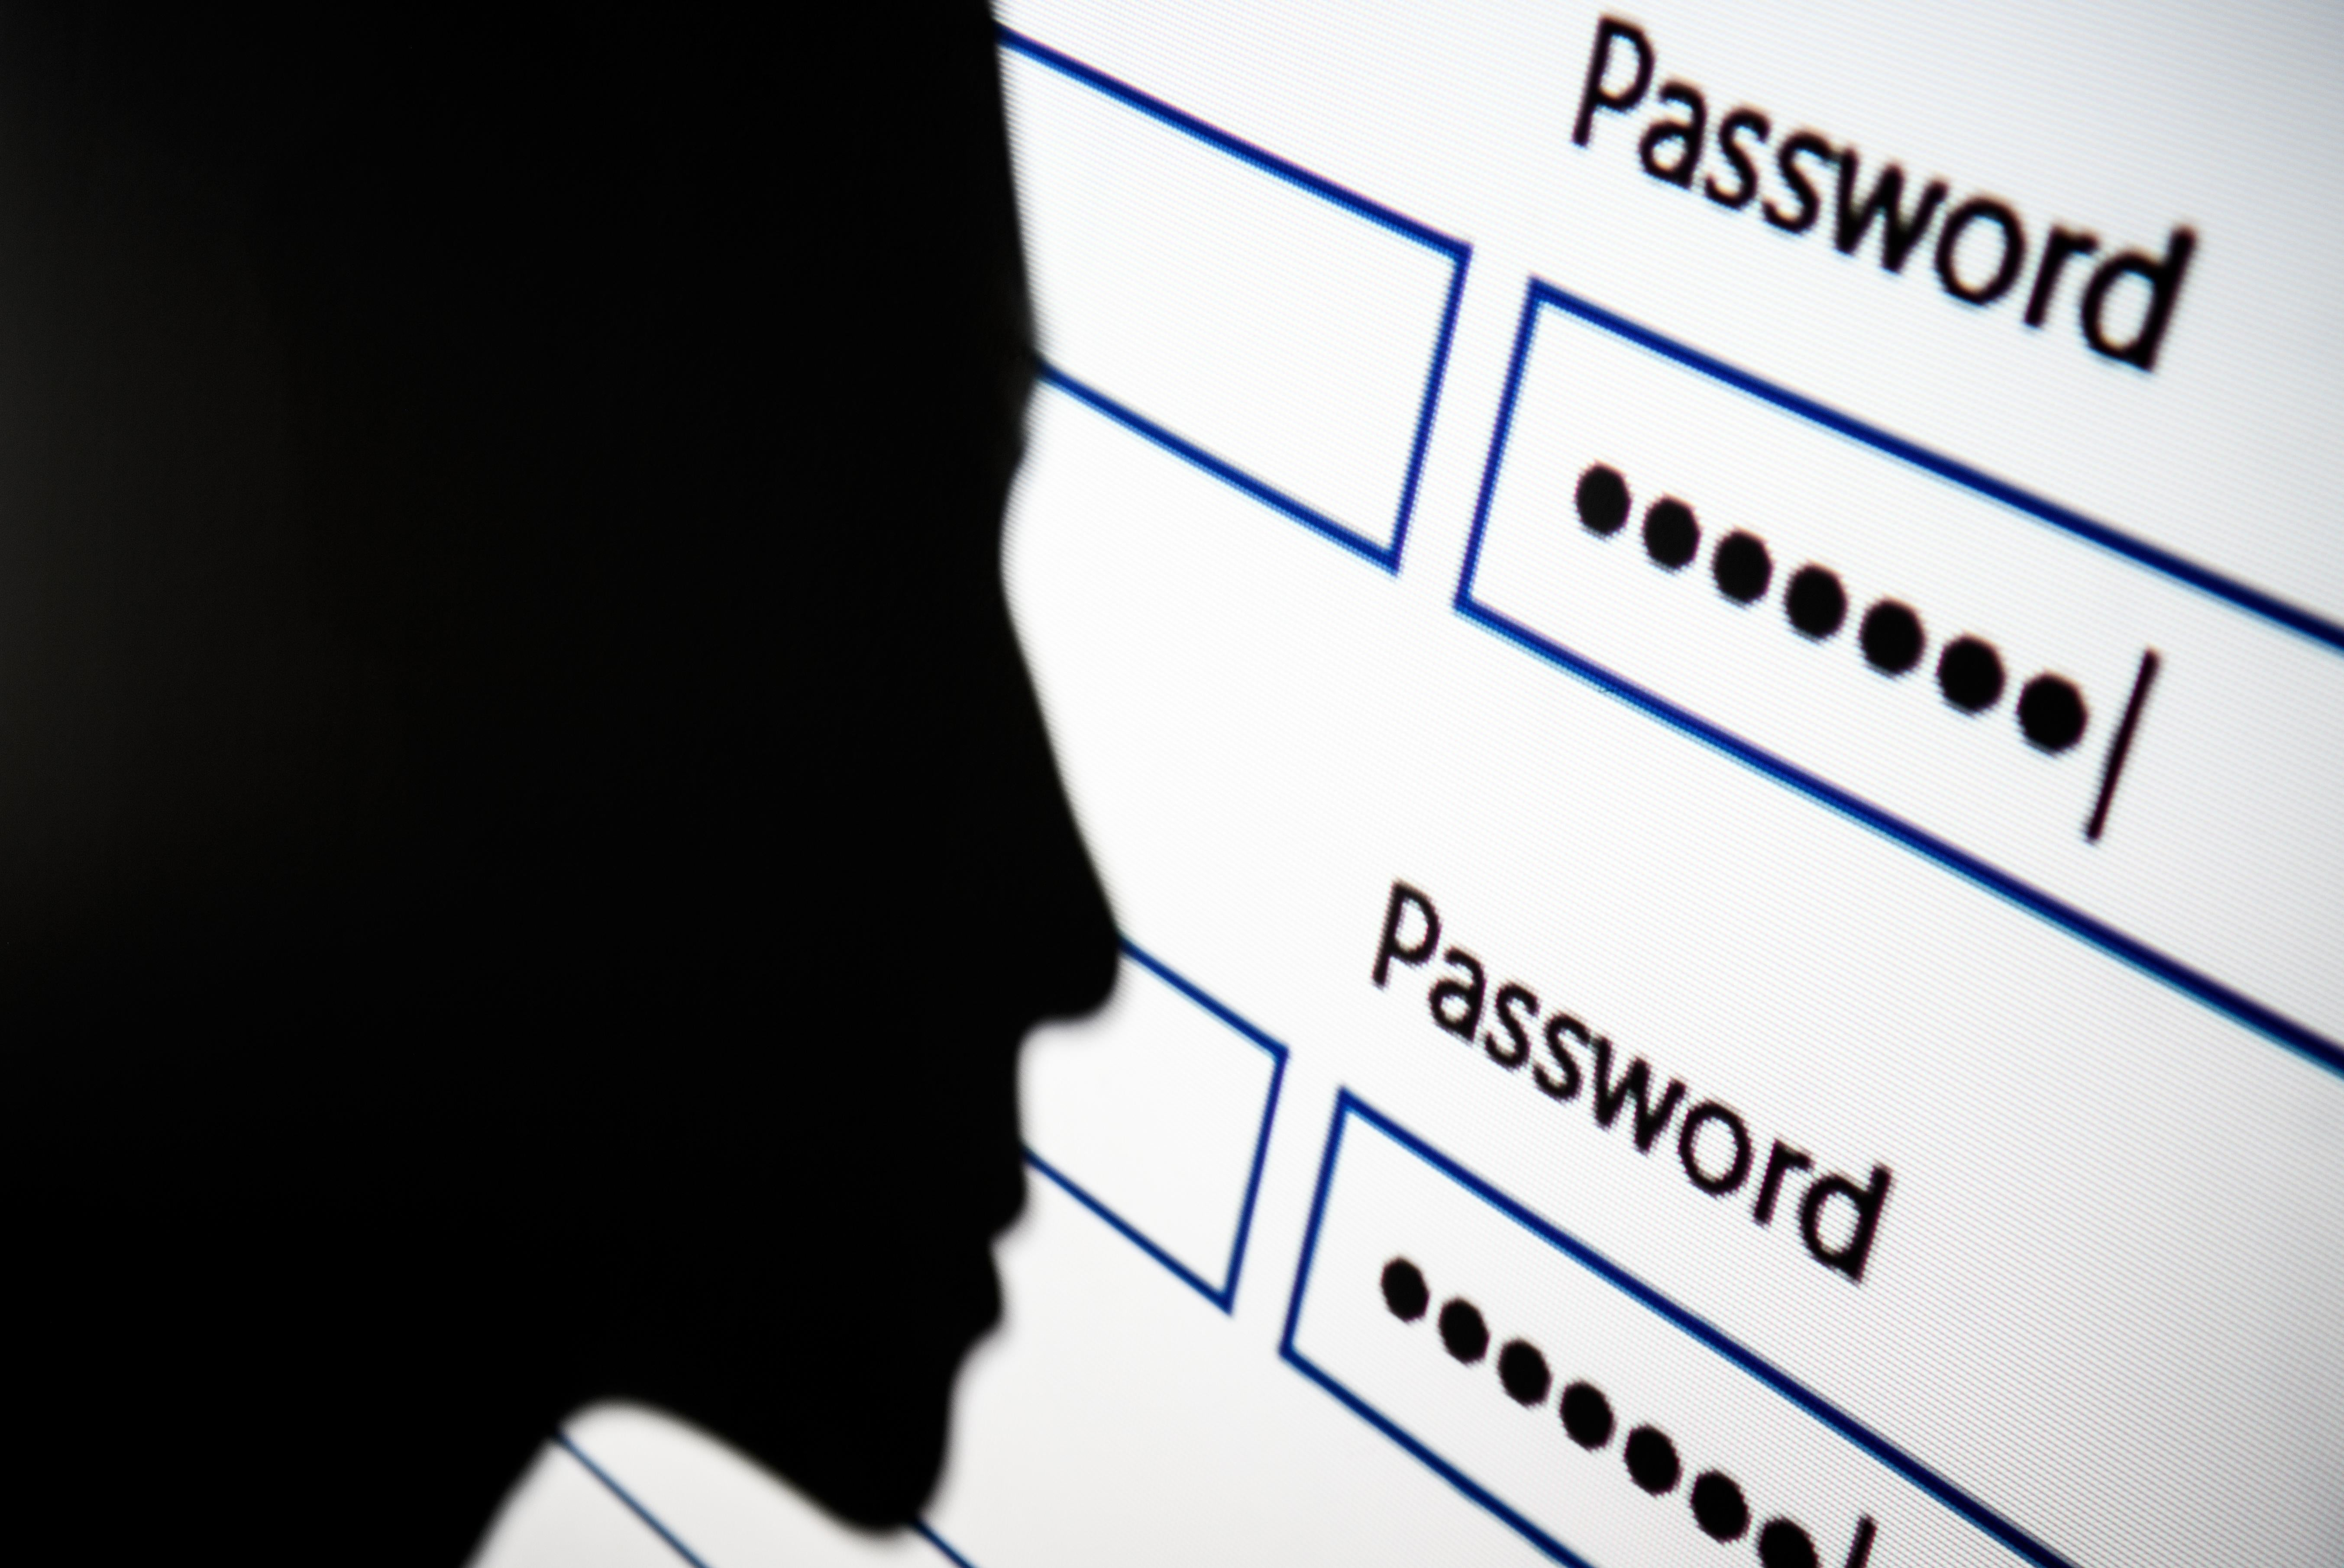 slate.com - Jennifer Kang - A New California Bill Would Require Better Passwords for Internet of Things Devices